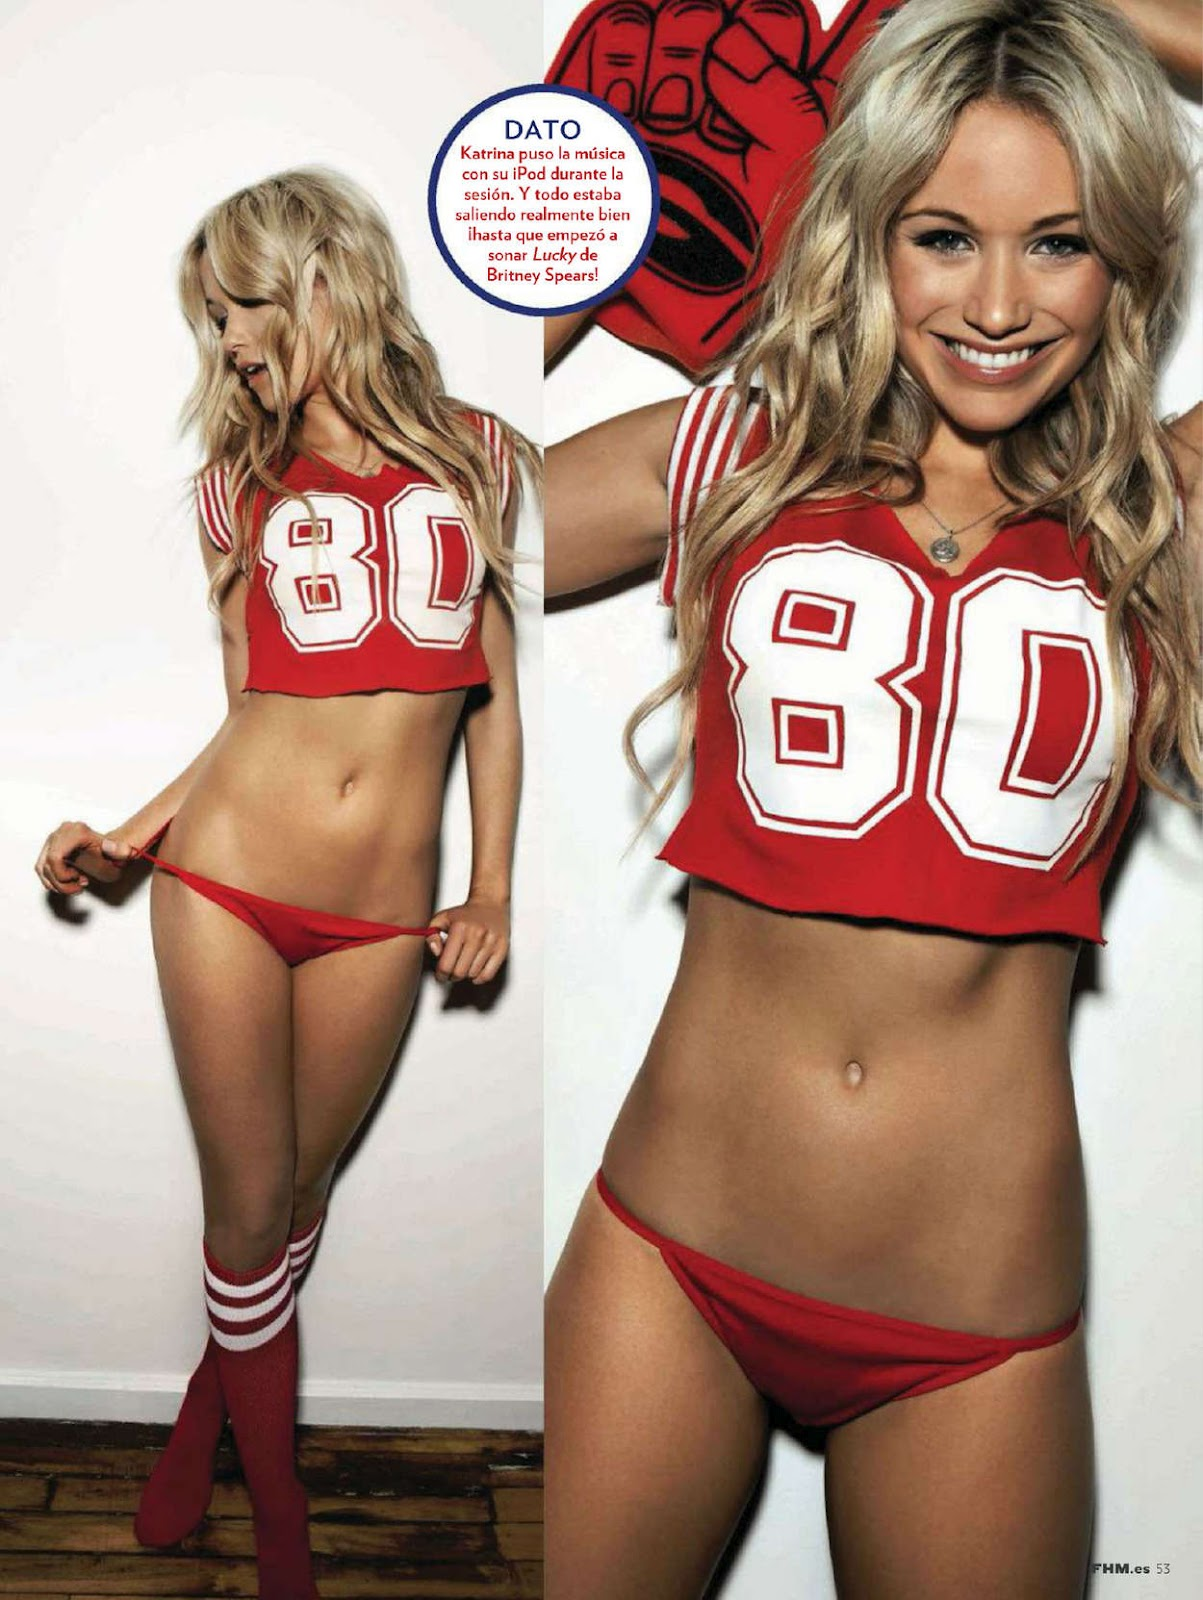 Katrina Bowden Was Featured On The June 2012 Issue Of Fhm Spain